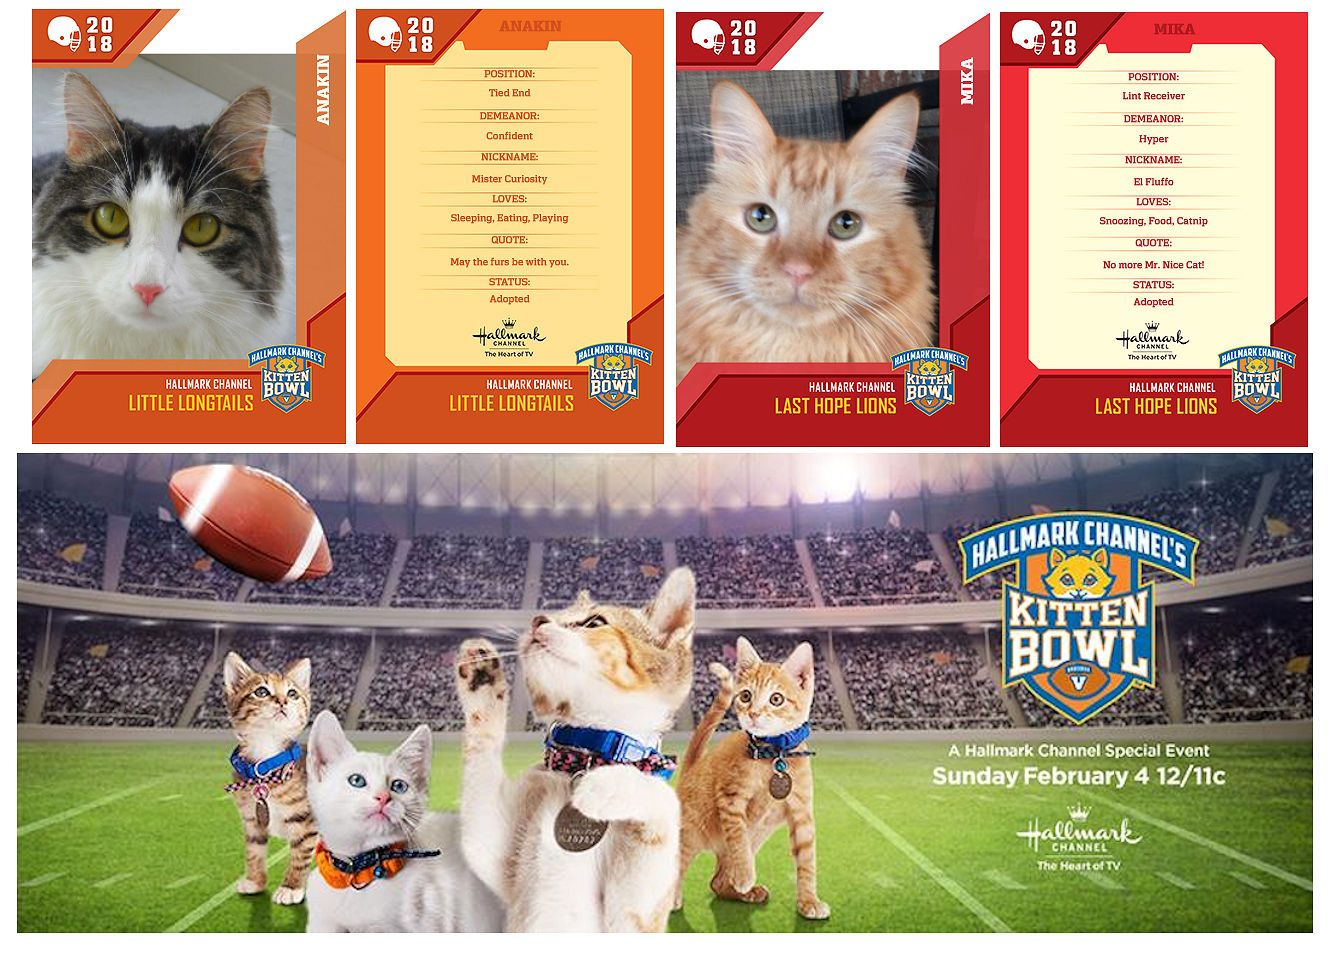 Exciting News Anakin Mika Are Going To Be On Kitten Bowl V Hallmark Channel Sunday February 4 12 11c Make Your Own Cat Kitten Bowls Kittens Cutest Kitten